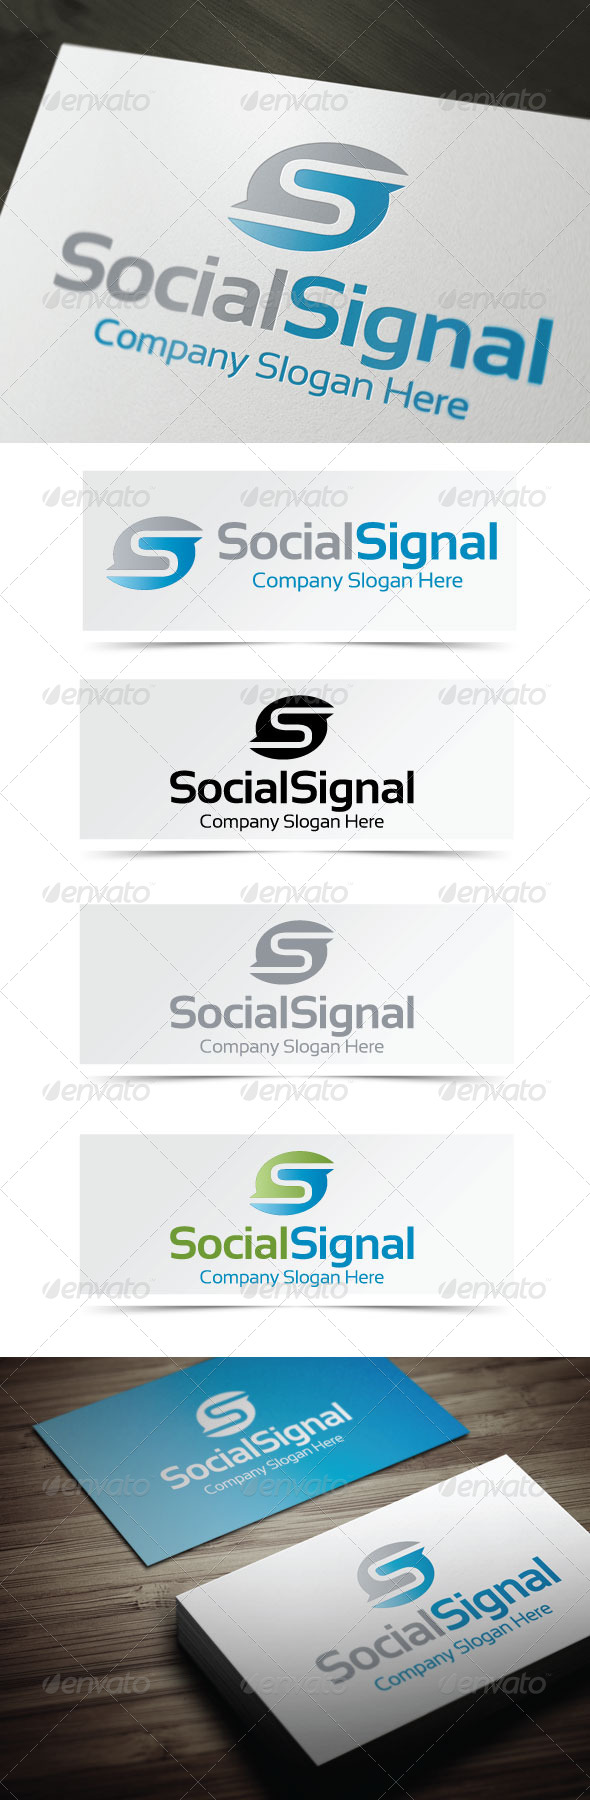 Social Signal - Letters Logo Templates